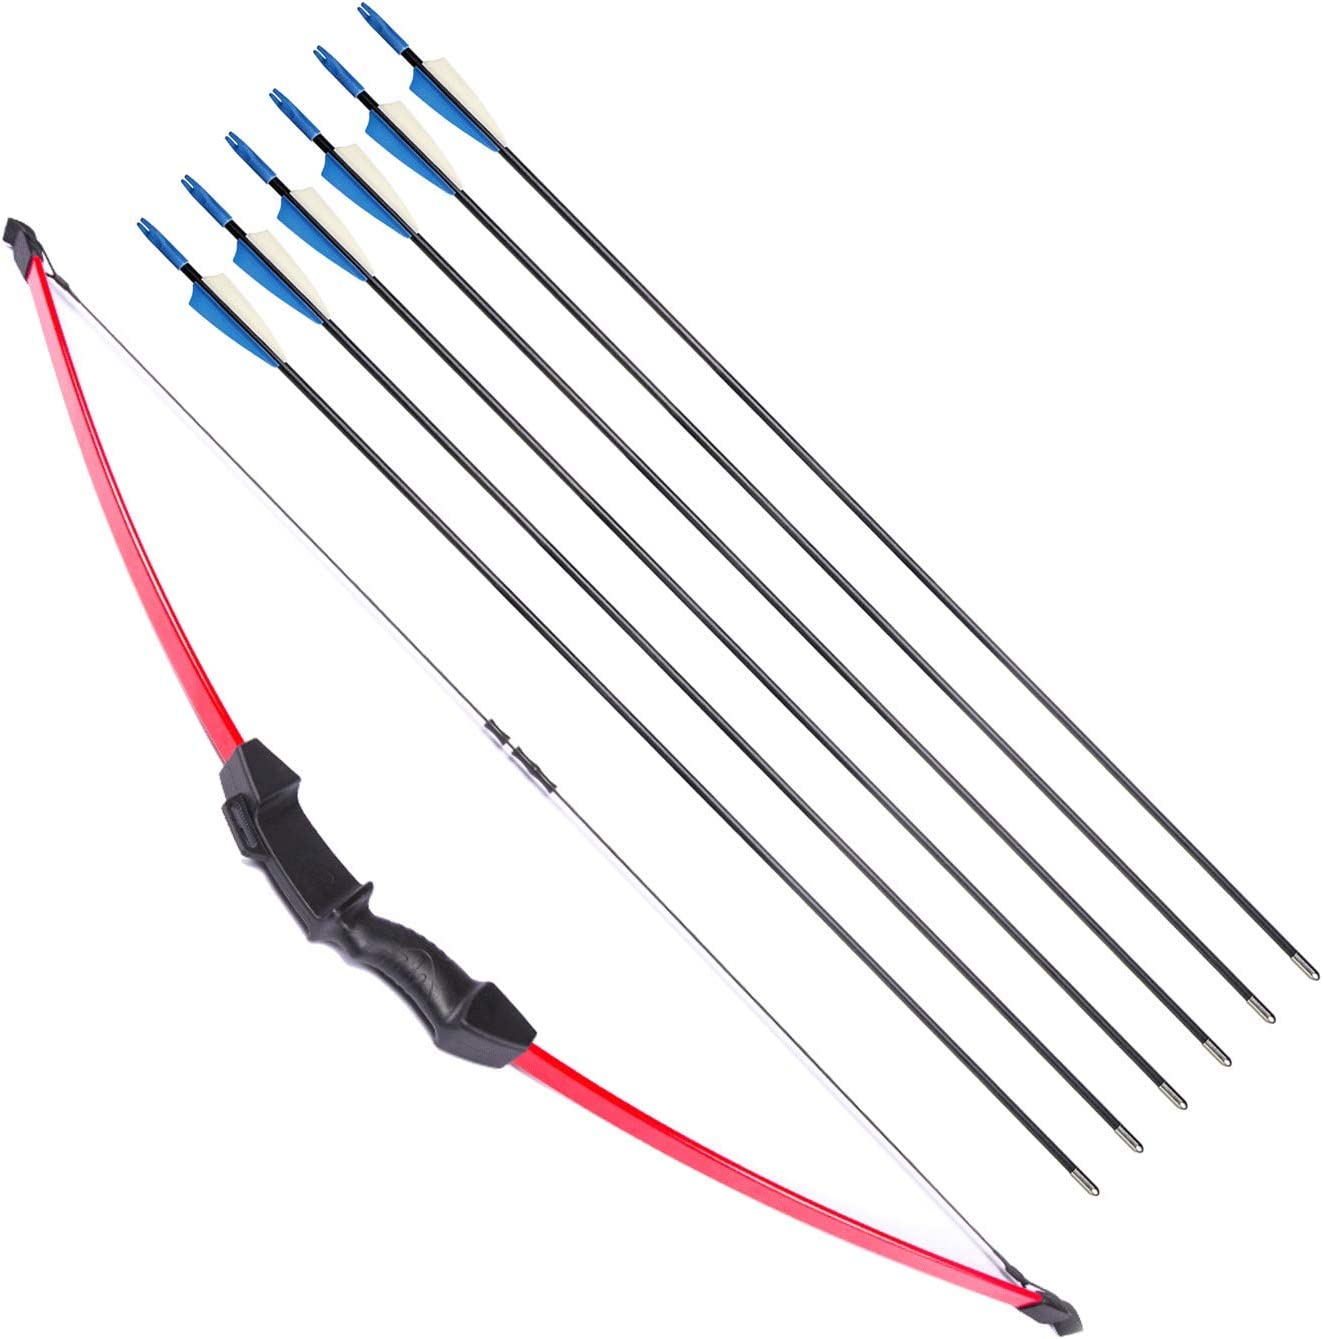 40lbs Archery Recurve Bow Arrow Set Adult Youth Junior Beginner Outdoor Hunting